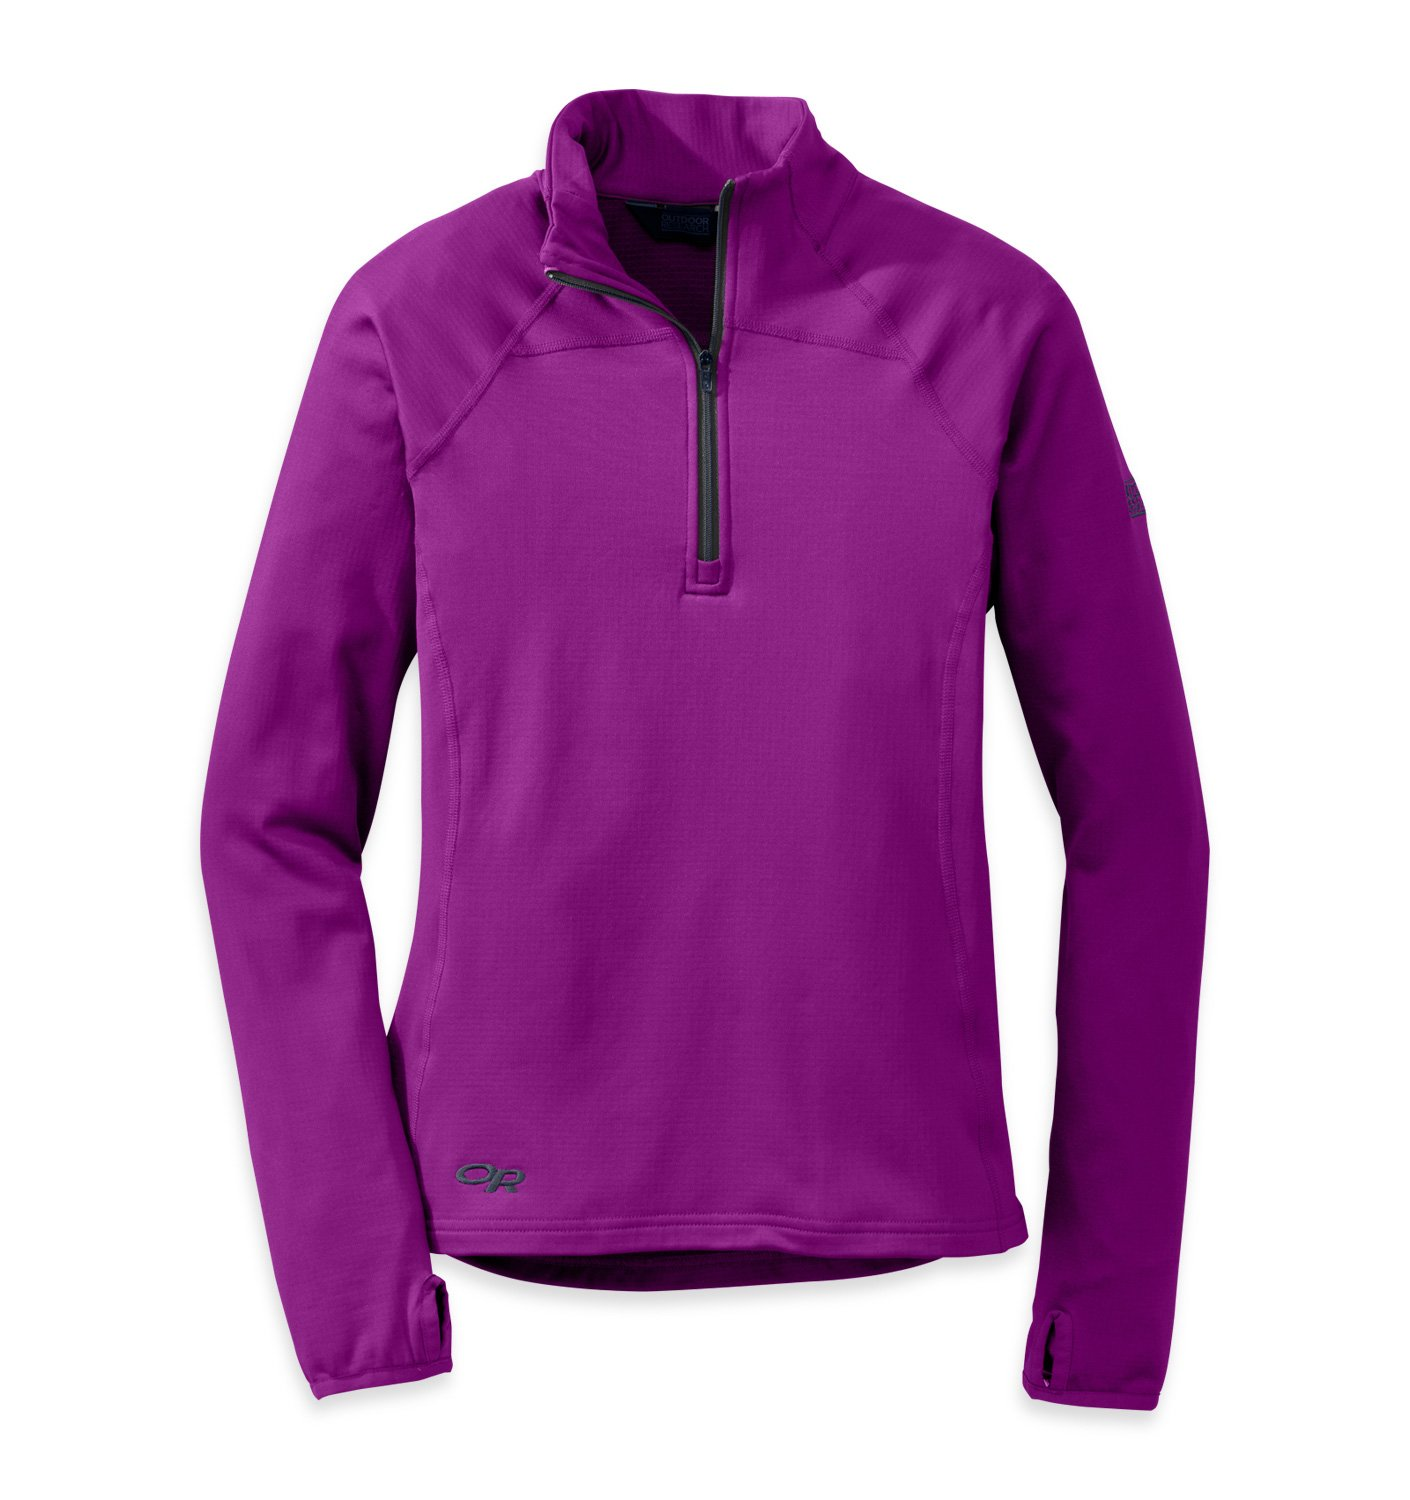 Outdoor Research Women's Radiant LT Zip Top, Ultraviolet/Night, Medium by Outdoor Research